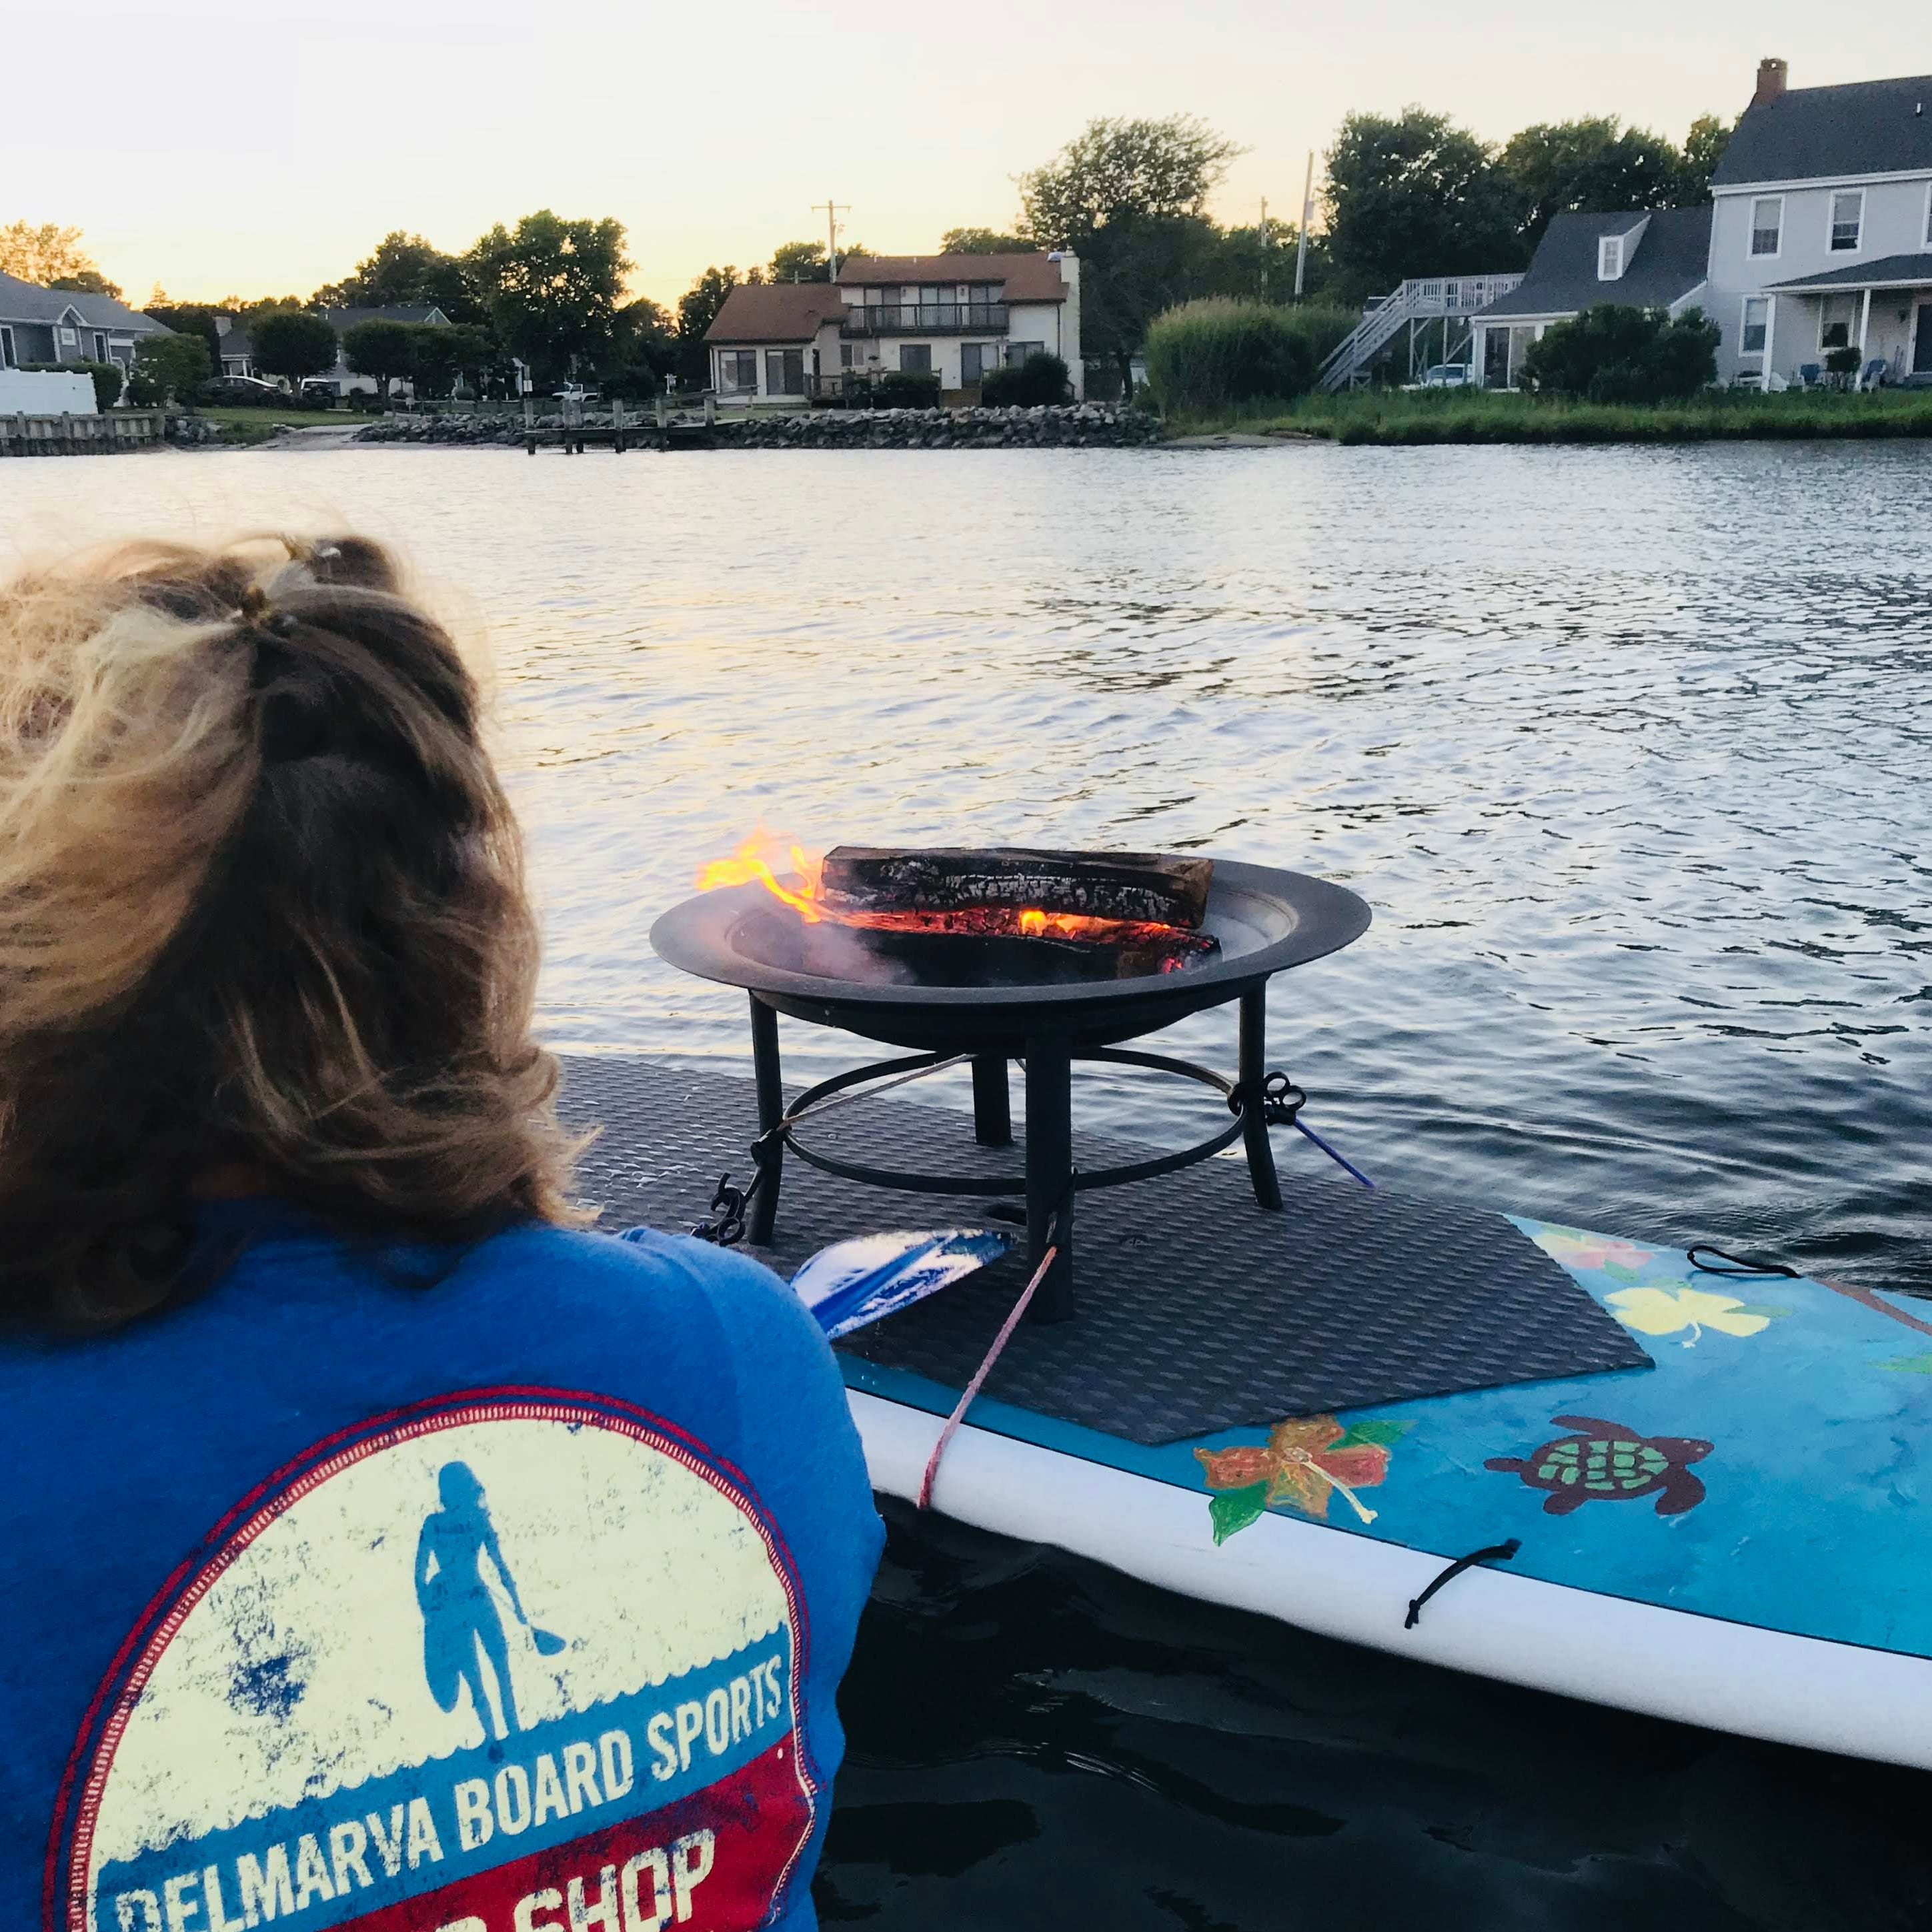 Floating fire pit with s'mores returns to Dewey Beach for paddleboarders this weekend